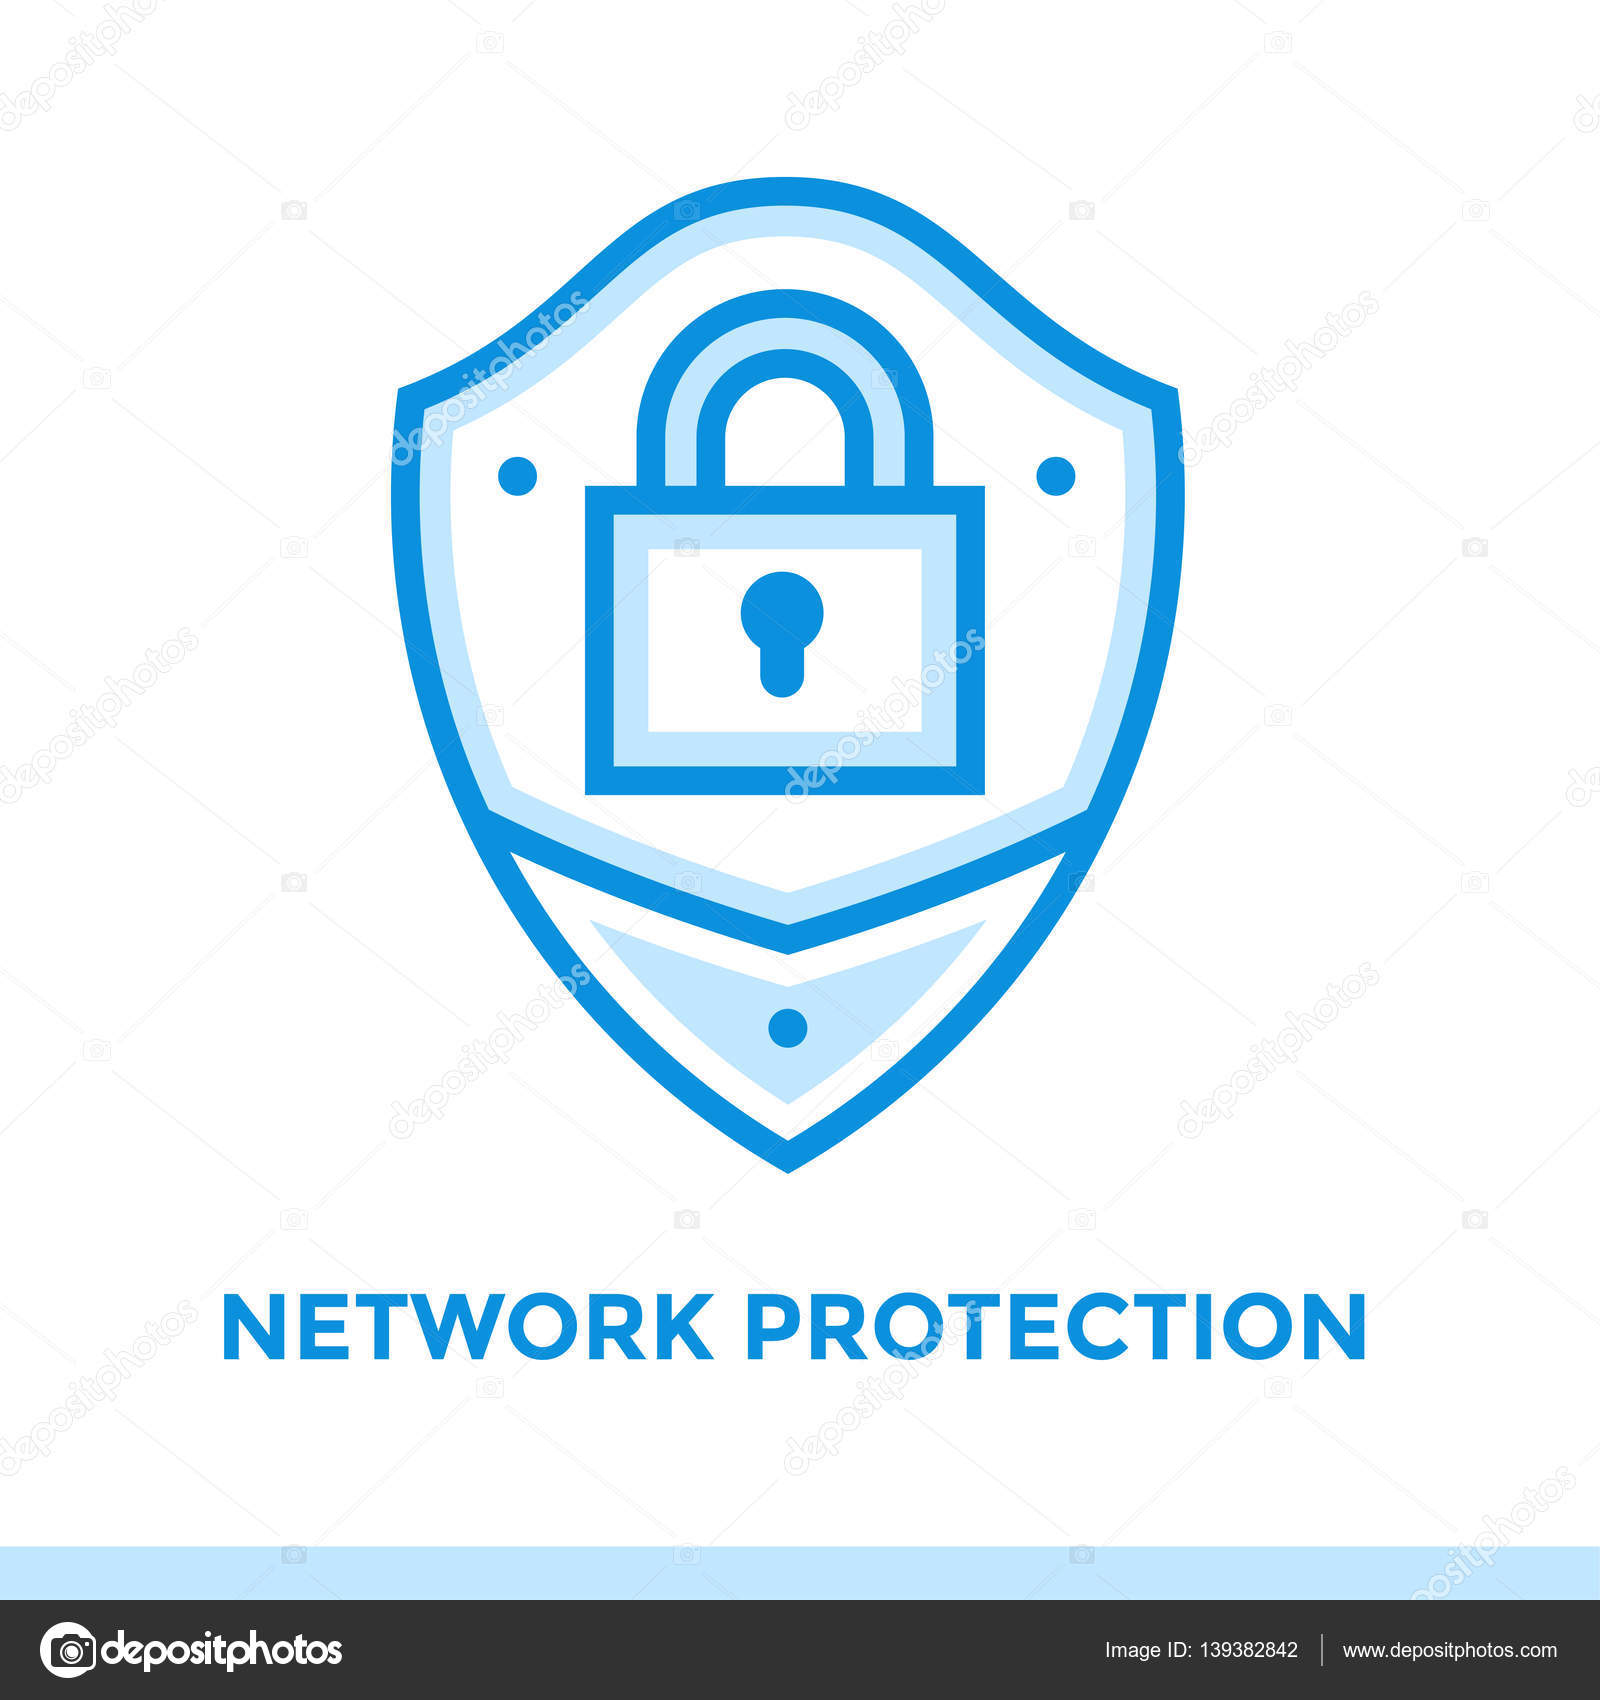 network protection